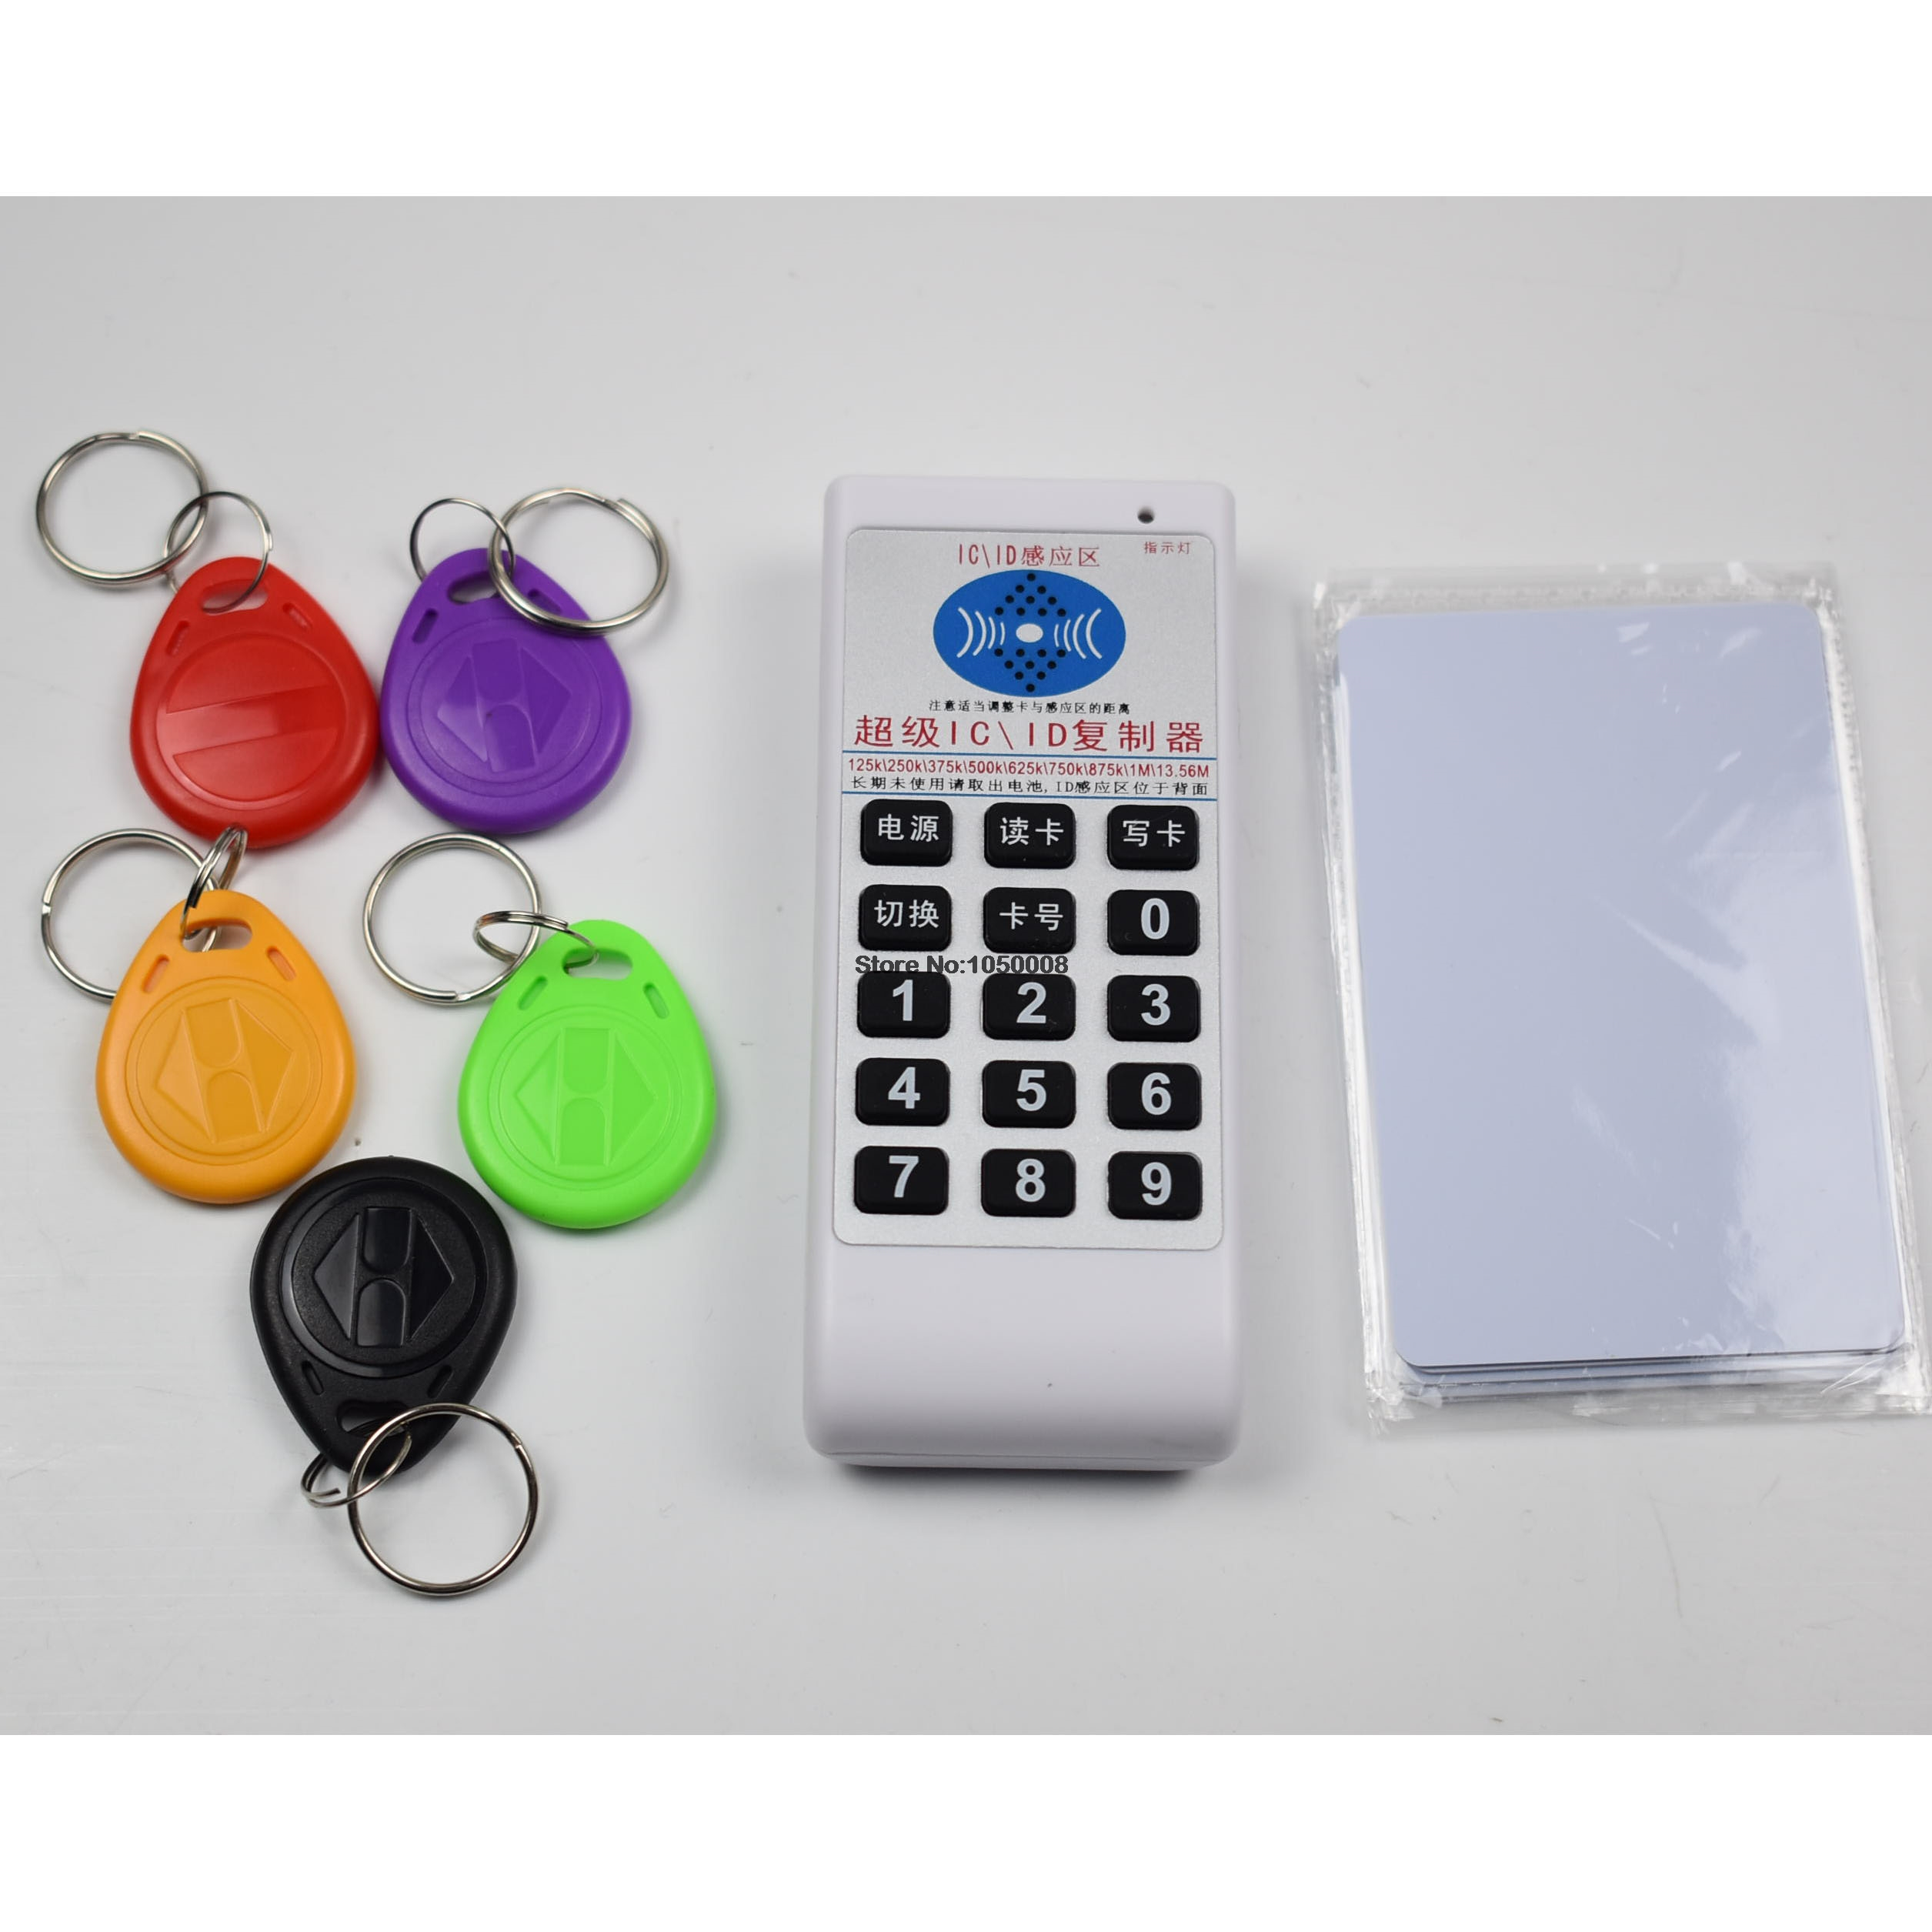 NFC RFID 13.56Mhz 125khz IC ID Copier Duplicator Cloner reader writer 9 Frequency + 5pcs 125khz EM4305 Writable Tags & Cards nfc rfid 13 56mhz 125khz ic id copier 9 frequency duplicator cloner reader writer 5pcs 125khz em4305 writable tag